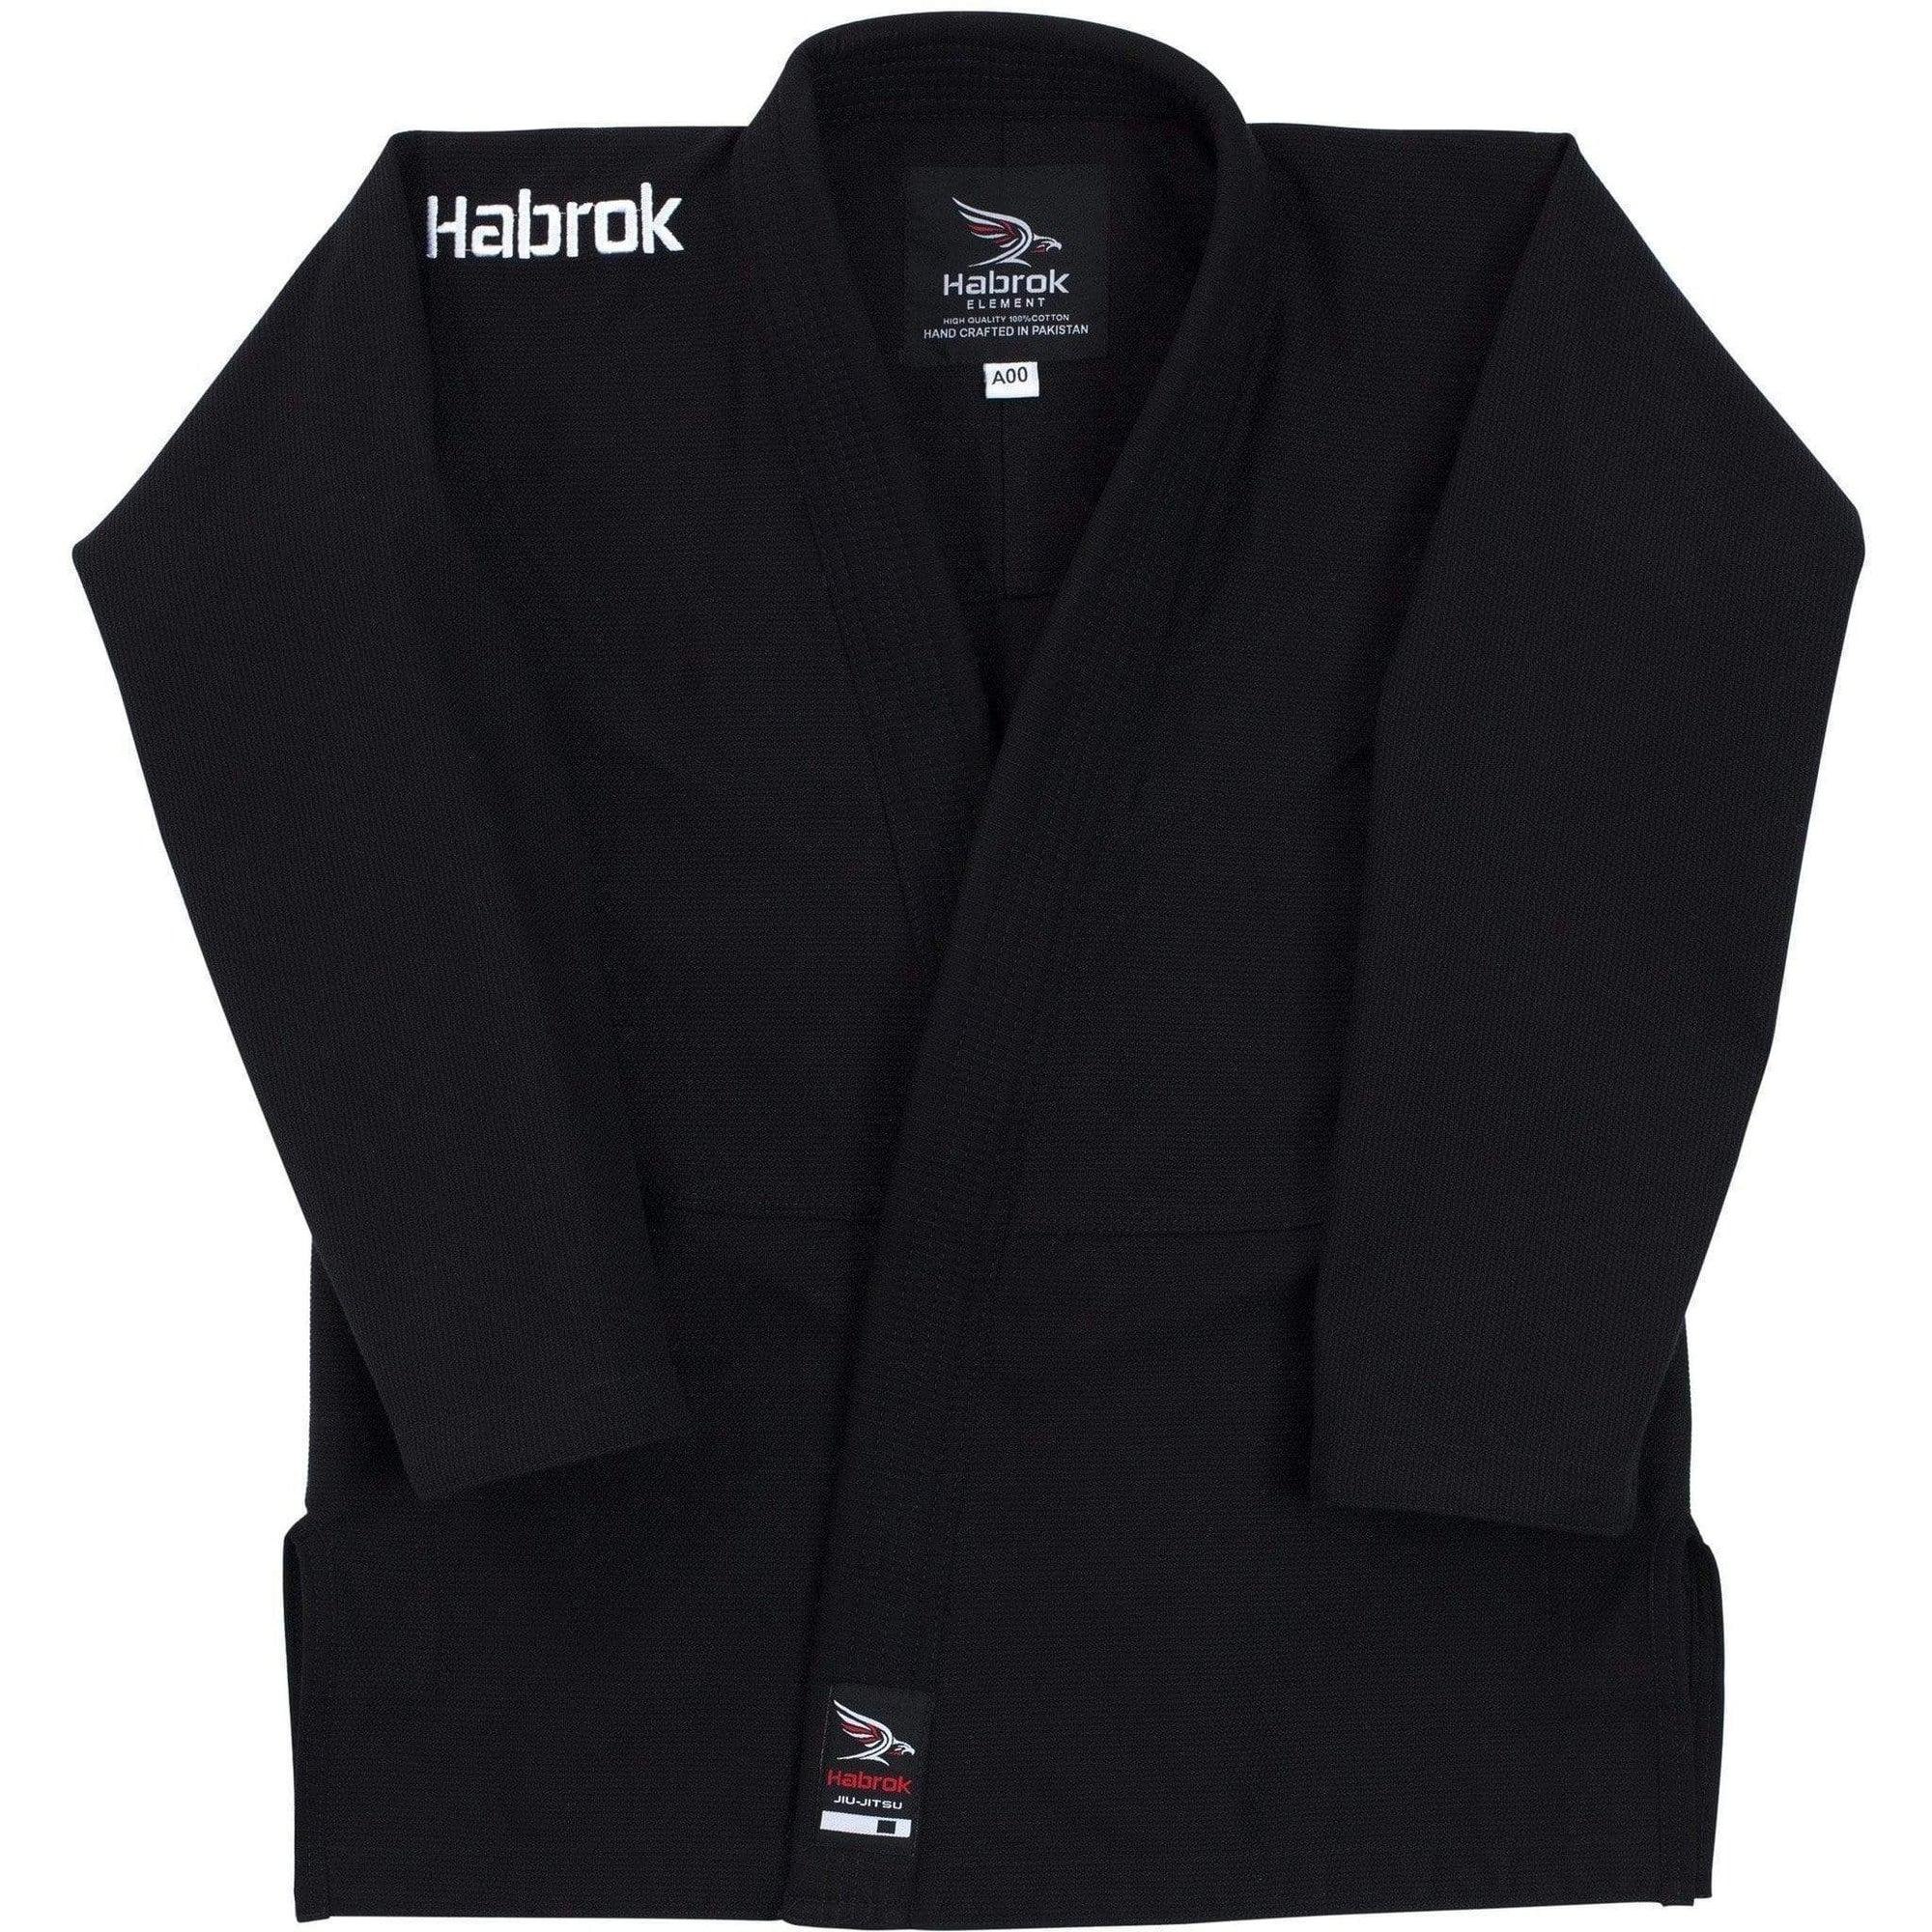 Habrok Jiu Jitsu Gi A00 / BLACK Element | Ultra Light Weight Gi 680334793641